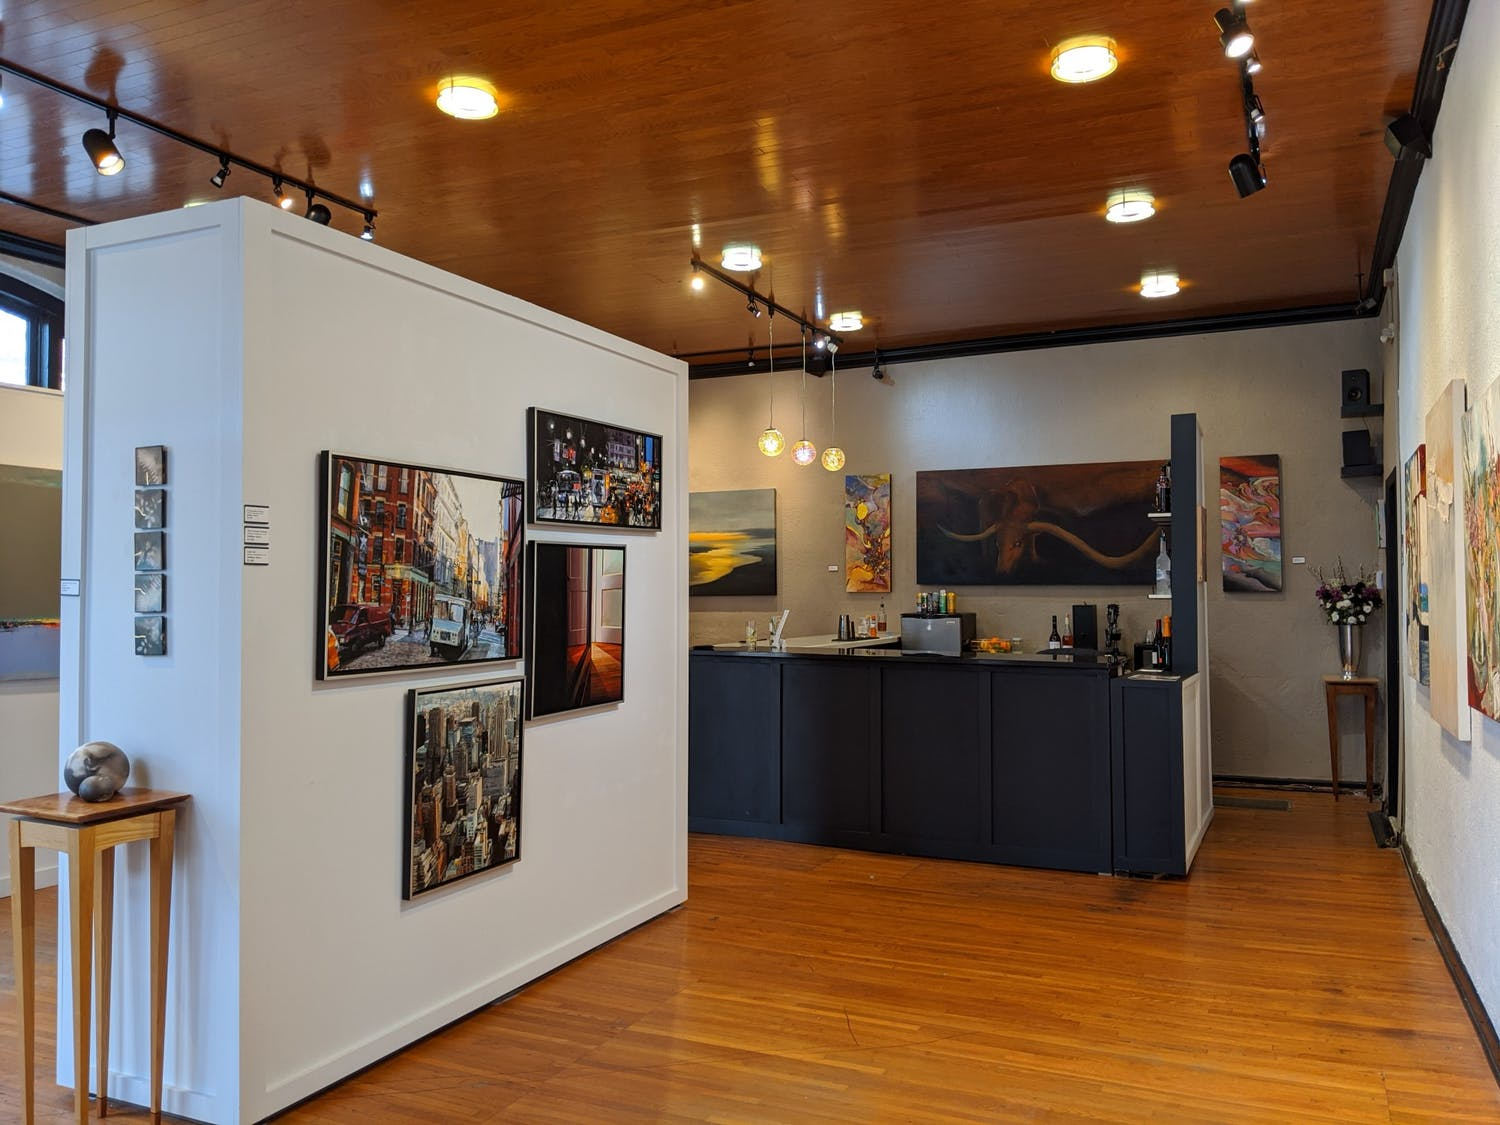 The interior of the Bakova Gallery in Hillsborough. Photo courtesy of Nick Baldridge.